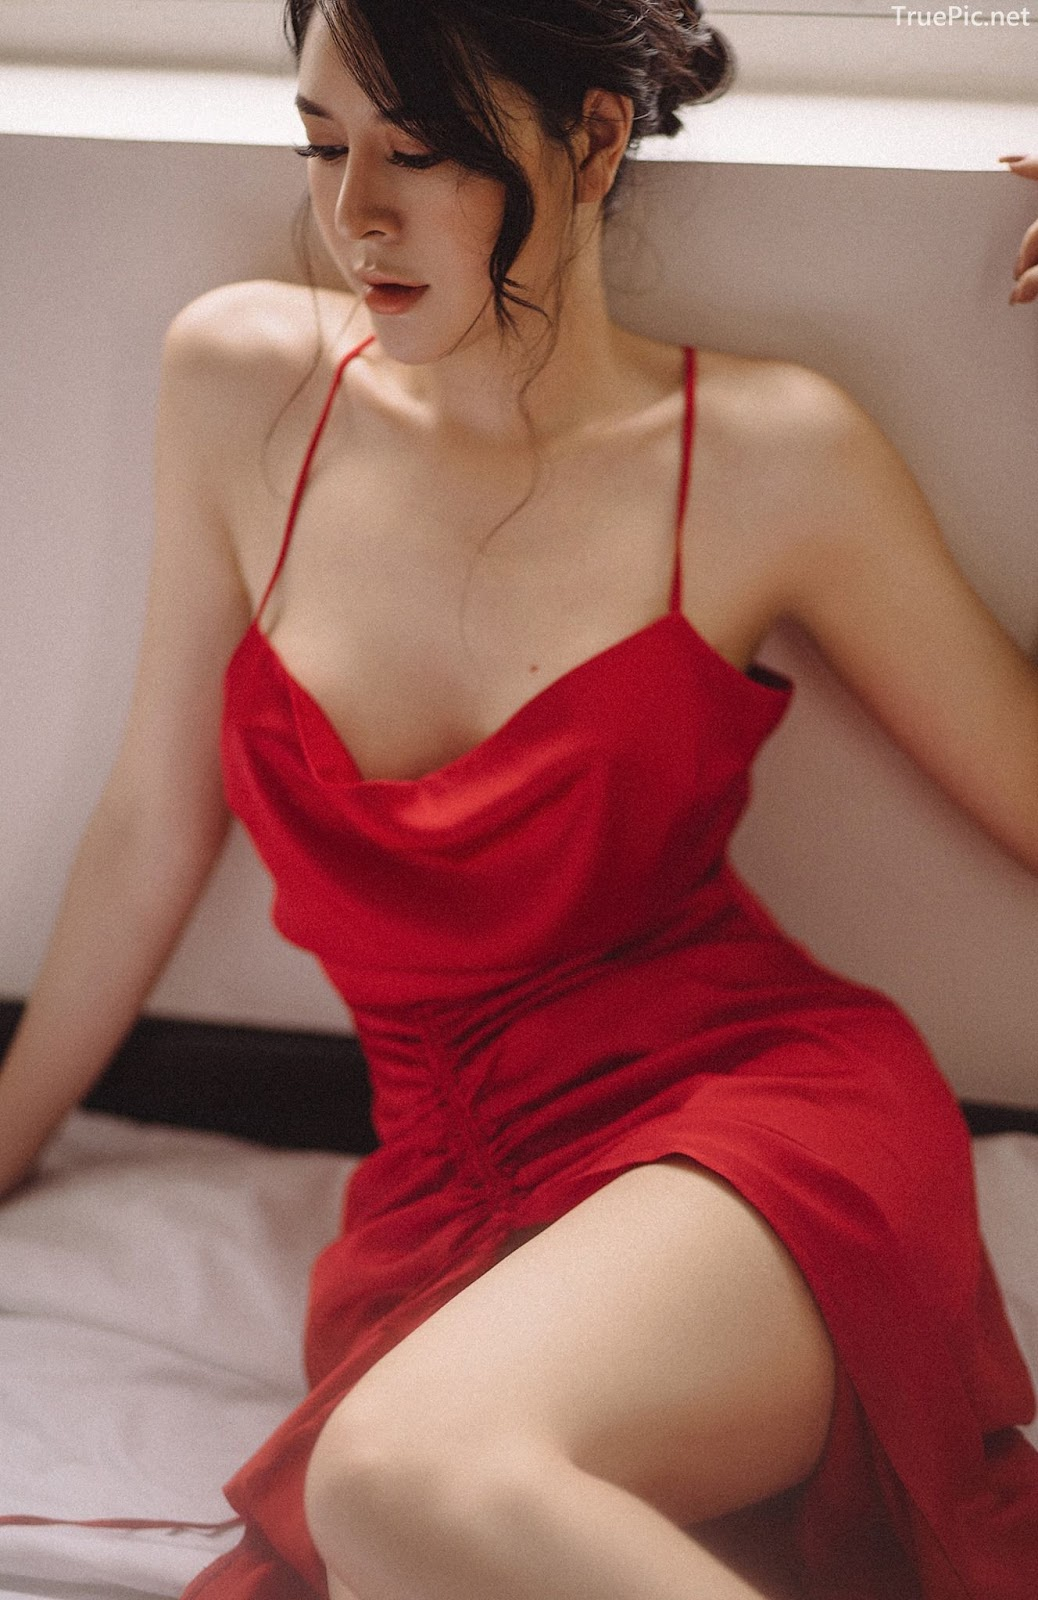 Vietnamese hot model - The beauty of Women with Red Camisole Dress - Photo by Linh Phan - Picture 6